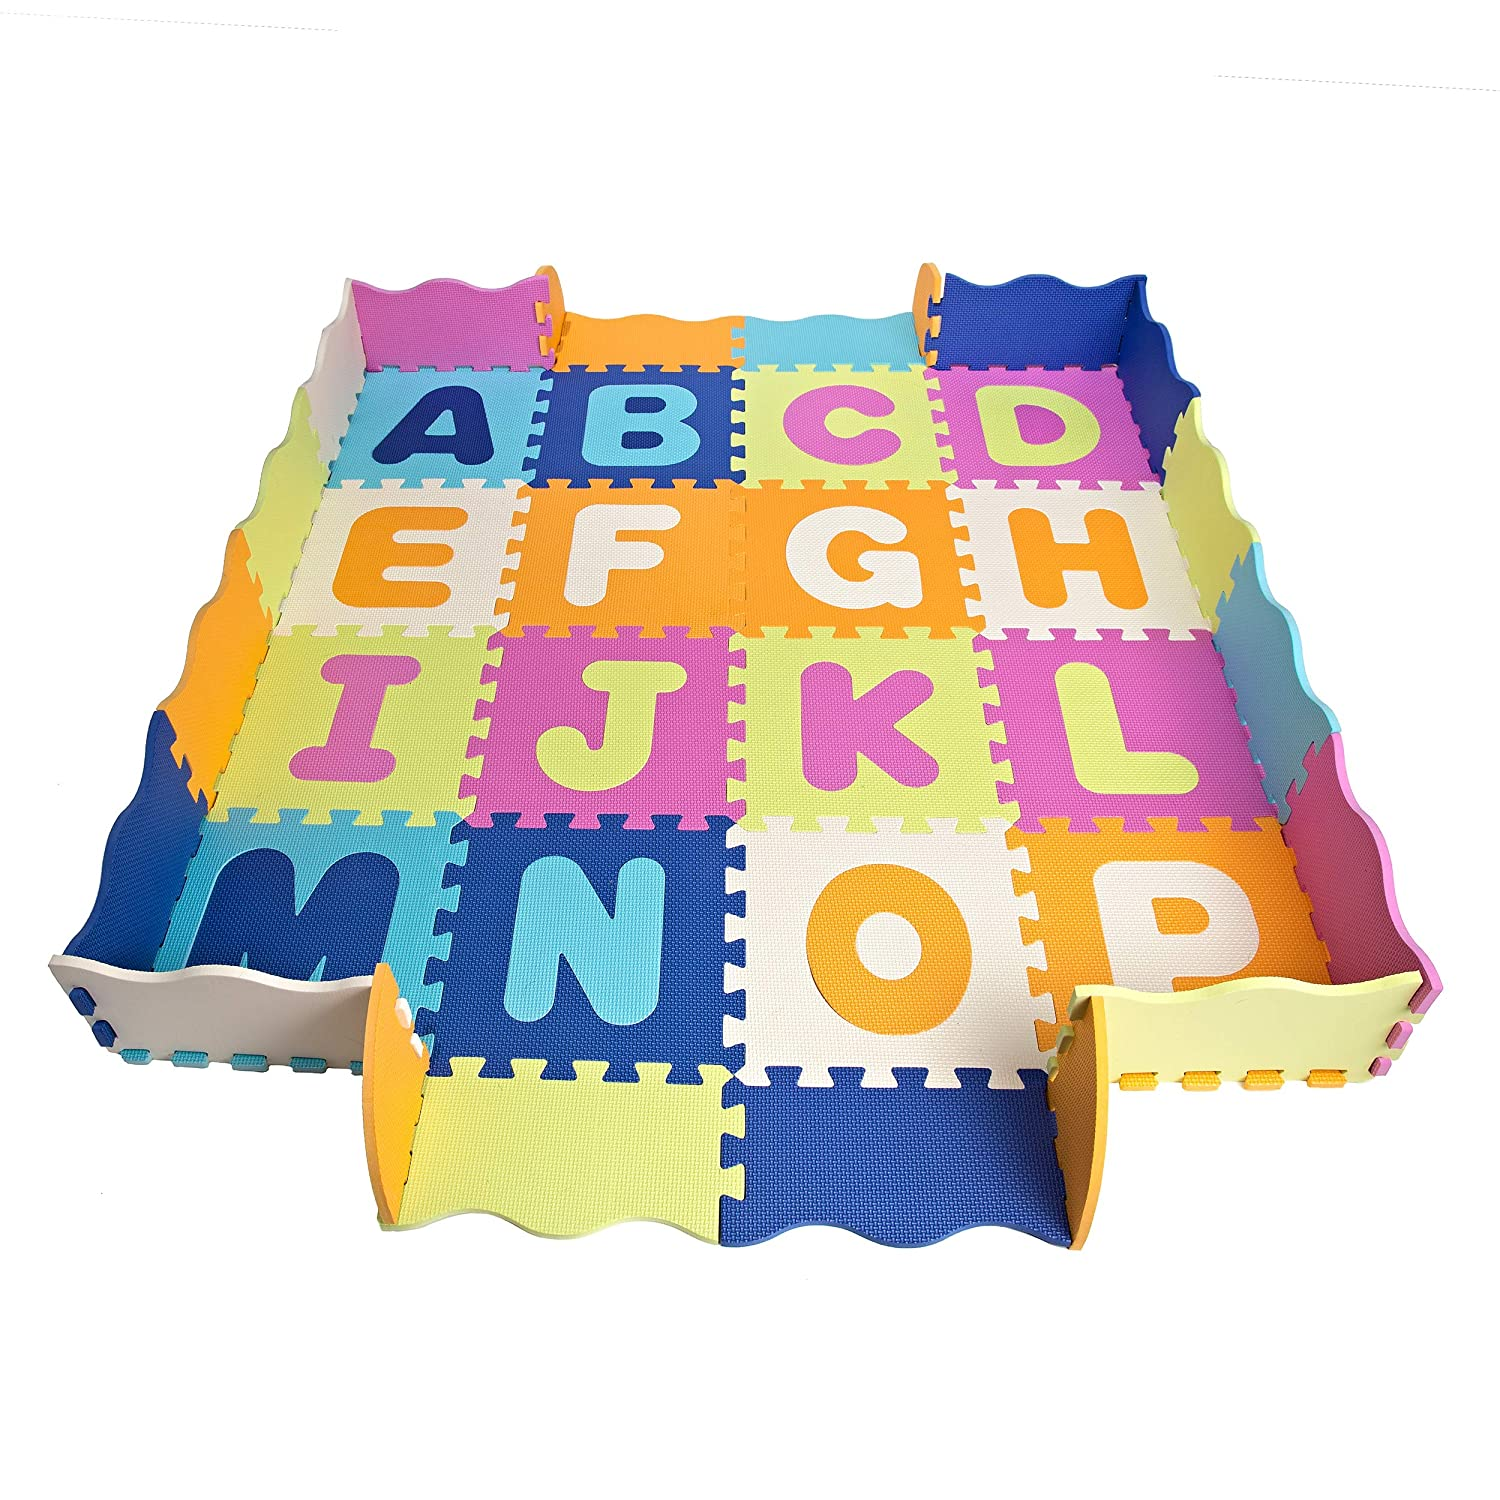 Baby Play Mat with Fence, Foam Letters, and Tiles - Playmat for Kids, Toddlers, and Infants. Tummy Time and Activity Gym Floor playpen. 56x 56, Over 74 Across! Over 74 Across! Wonder Bebe